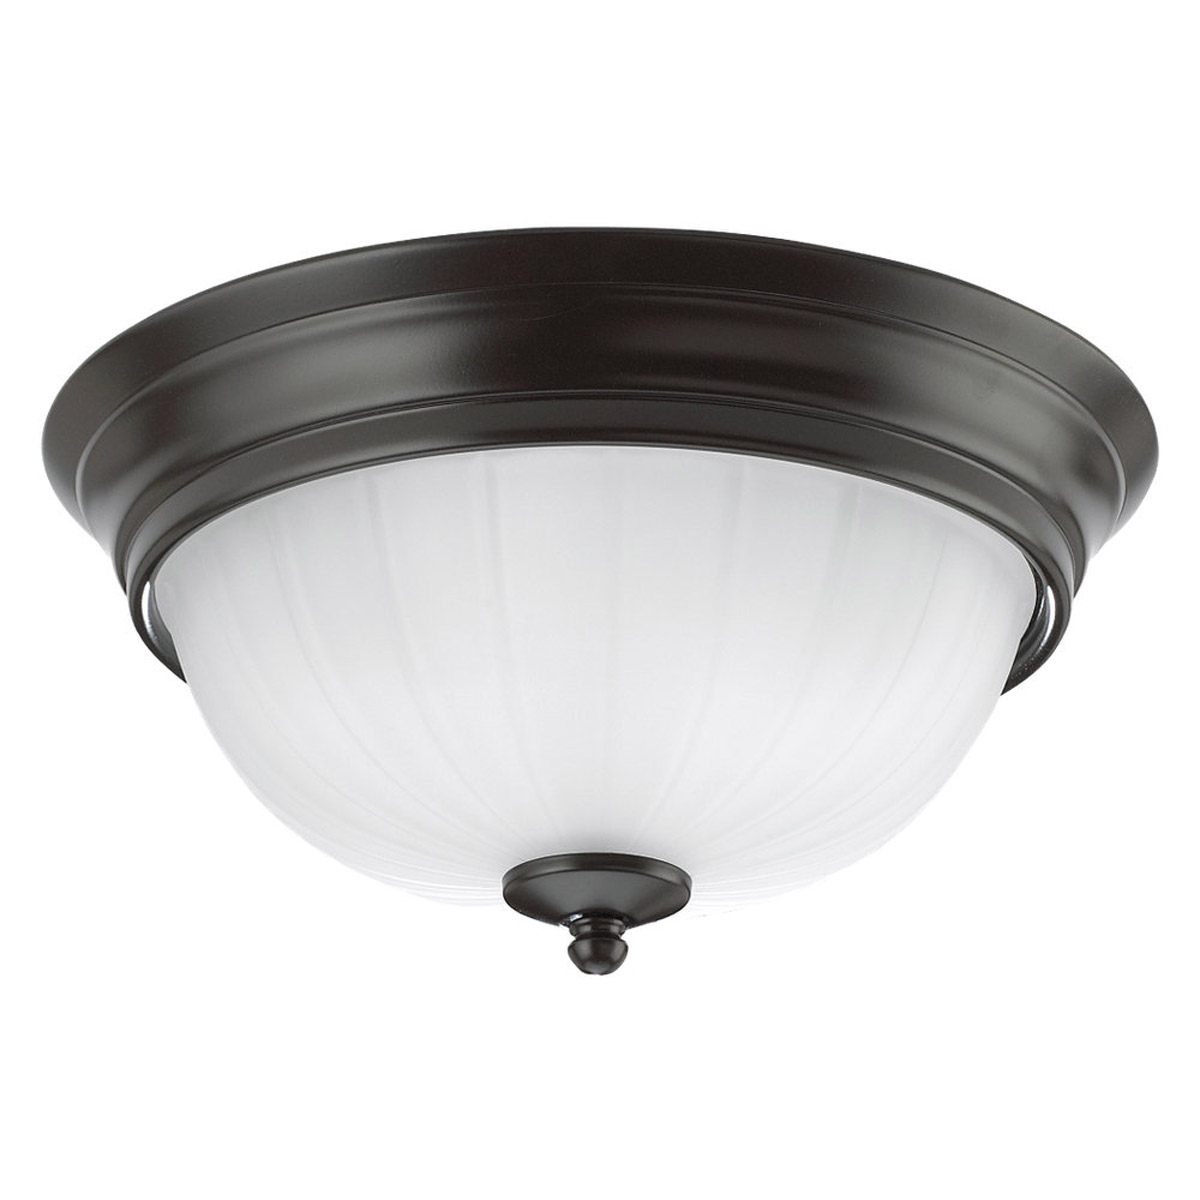 Sea Gull Lighting Linwood 3 Light Flush Mount in Heirloom Bronze 7506-782 photo